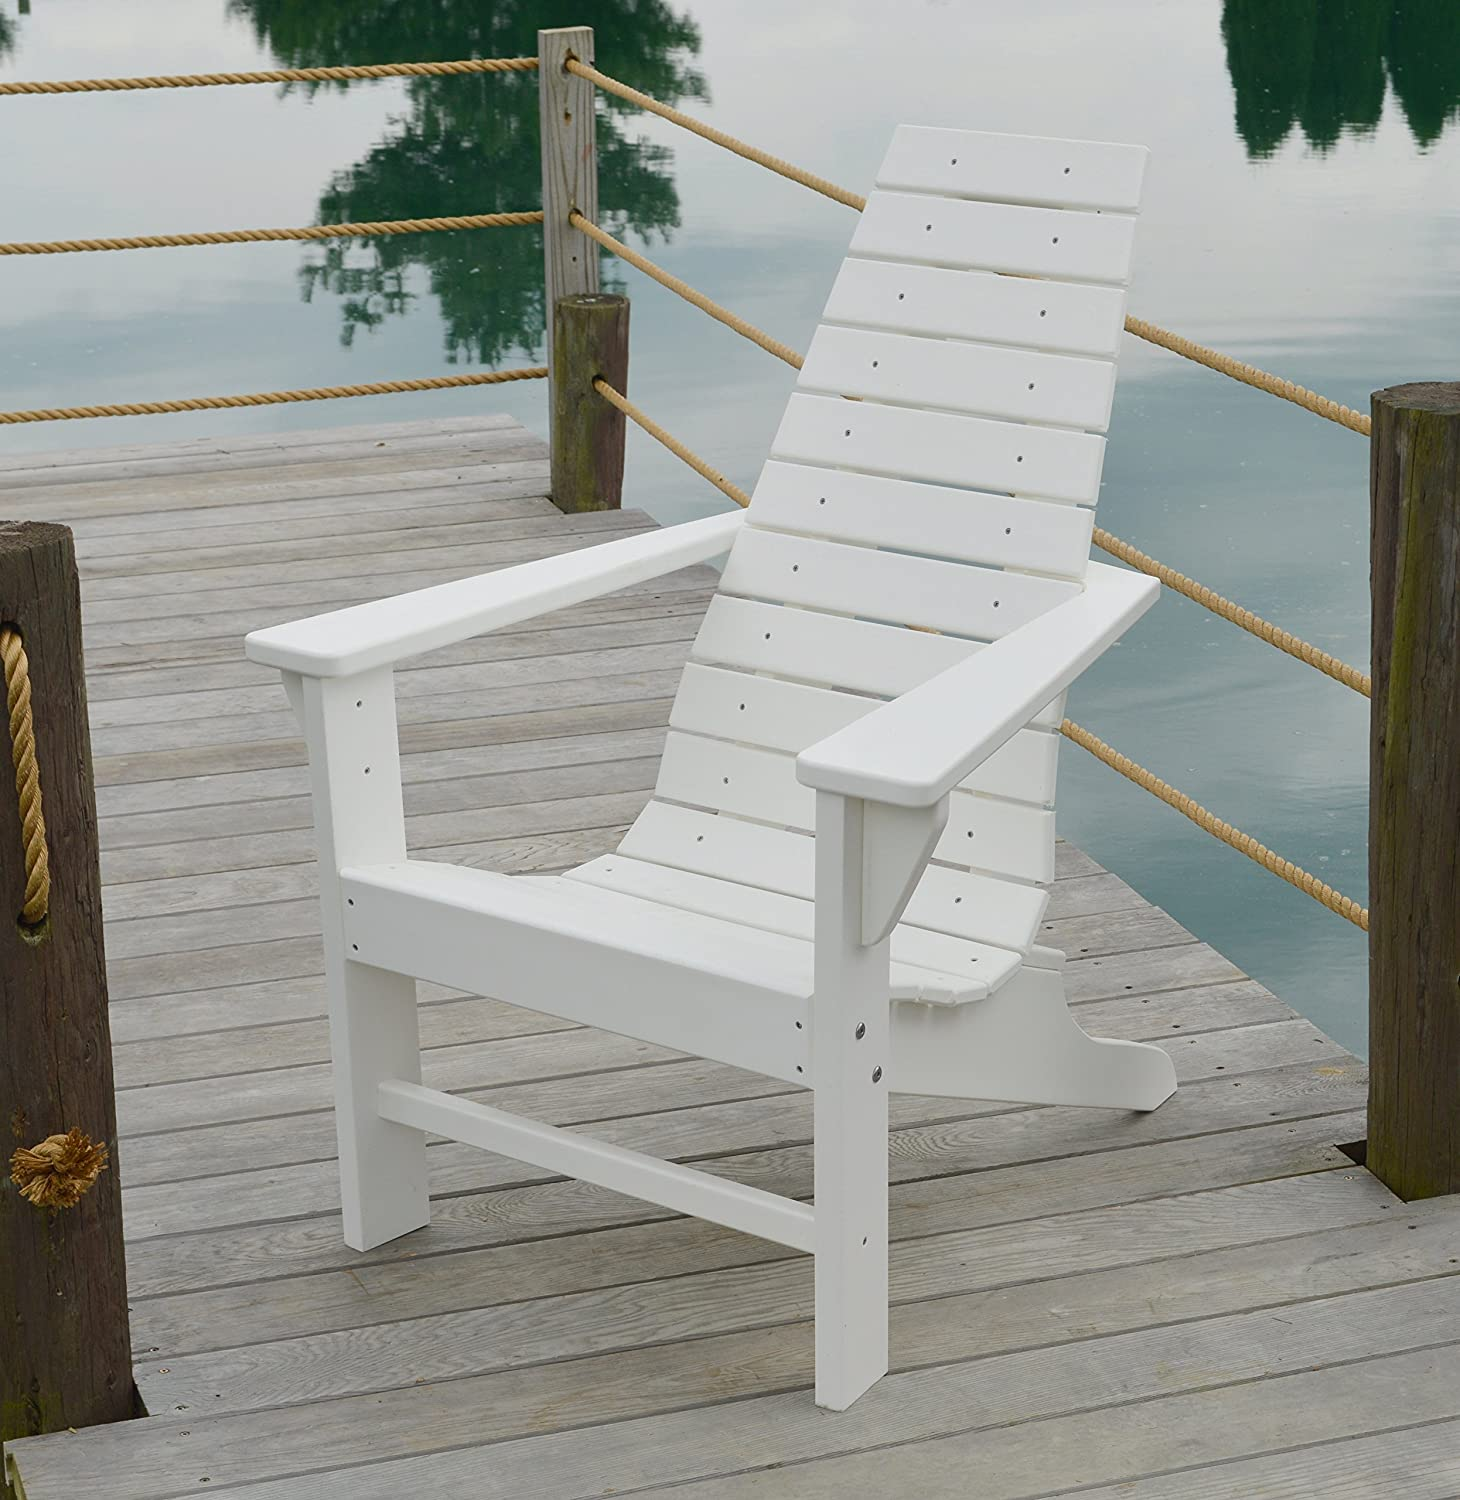 Polywood outdoor chair poly wood chairs contemporary outside furniture modern patio seating all weather solid recycled plastic for deck backyard